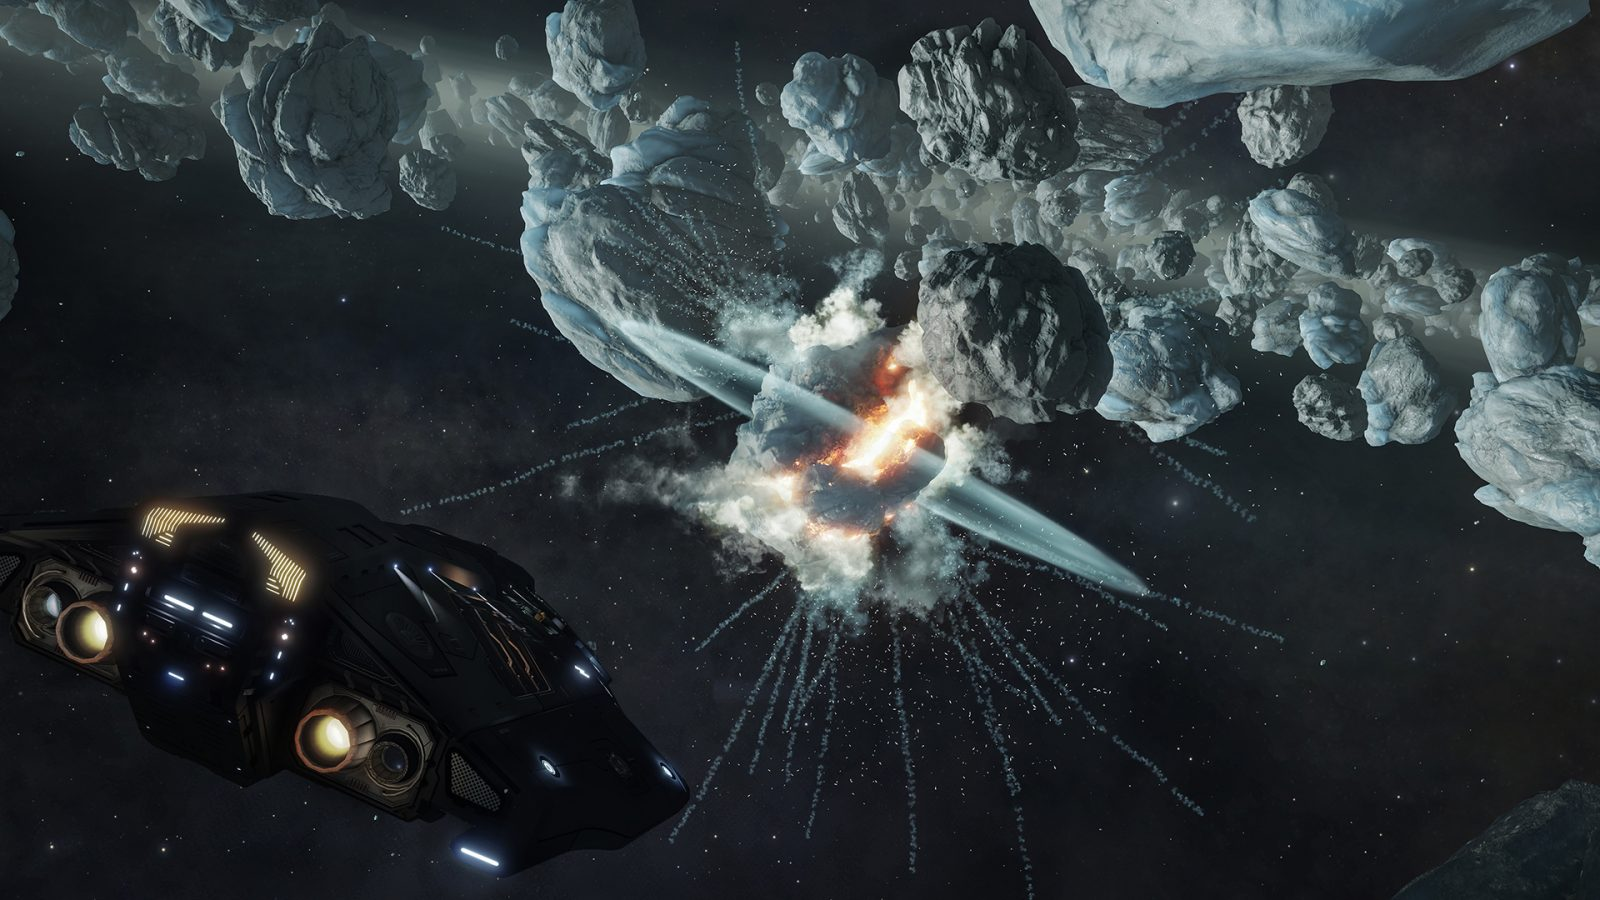 Latest Elite Dangerous Update Focuses on the New Player Experience